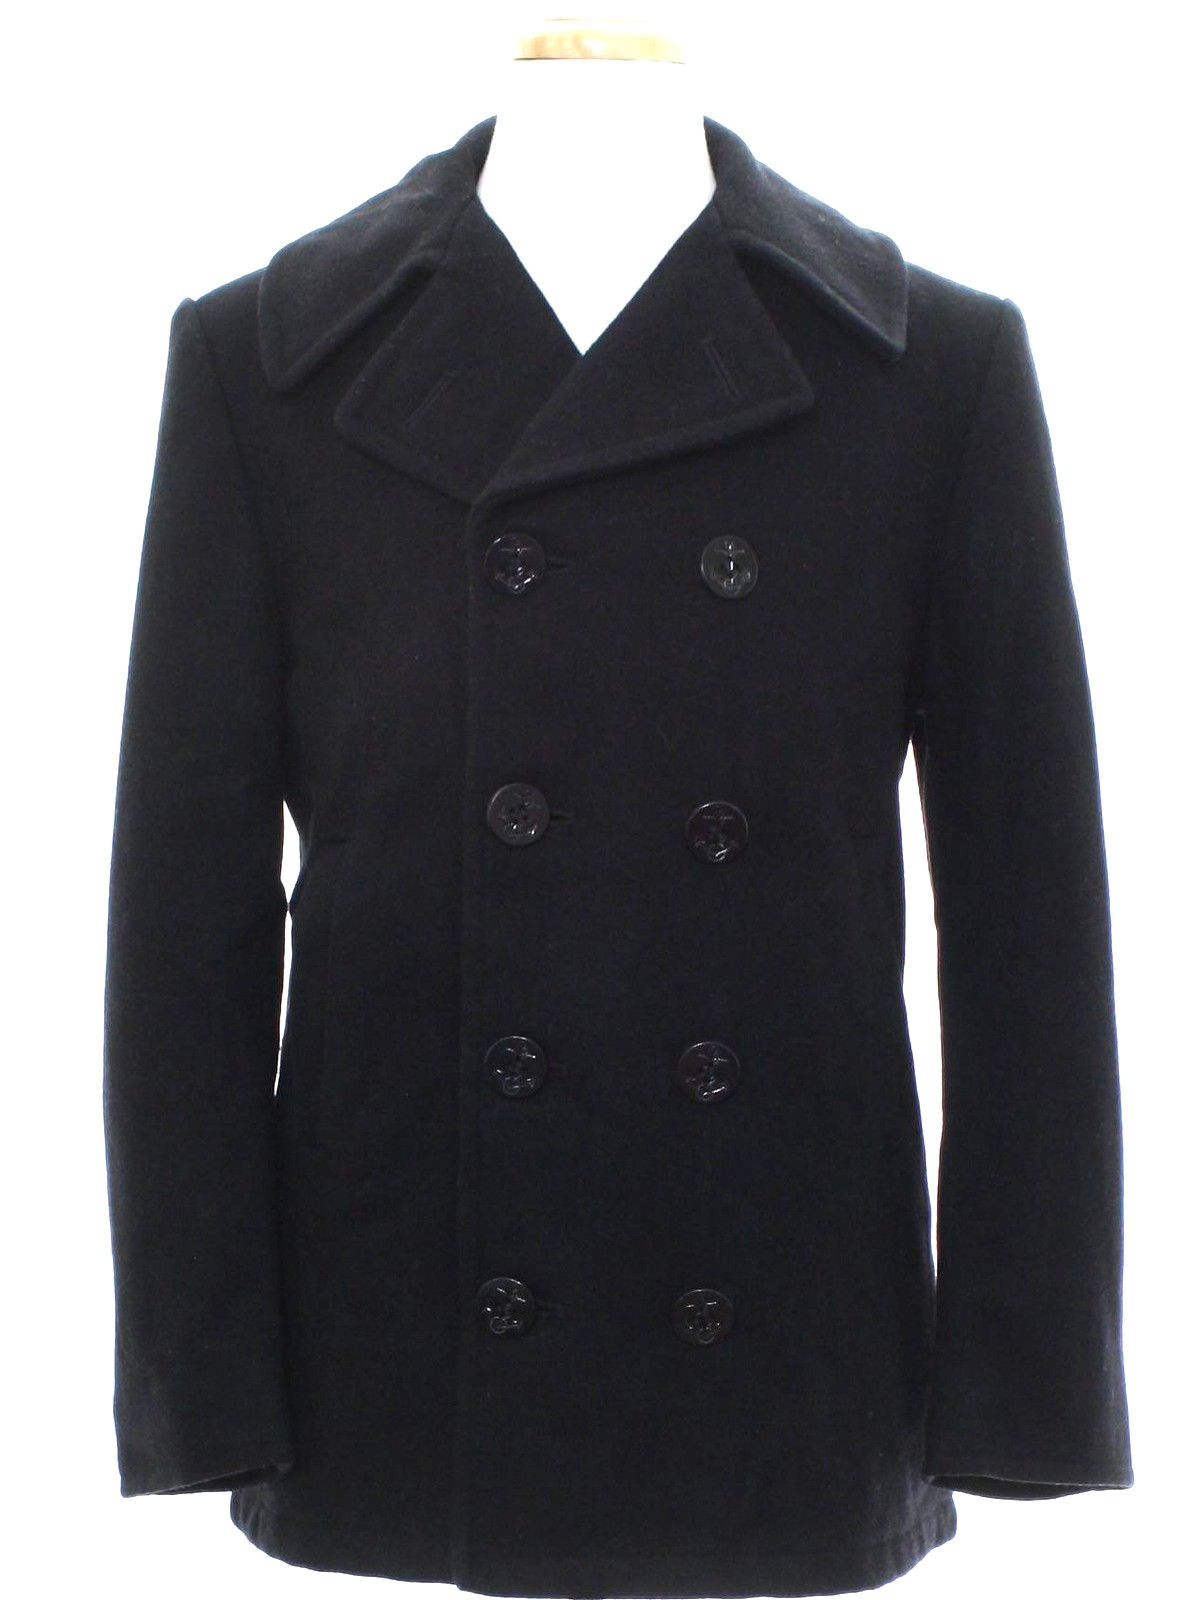 Be the captain of your own destiny with this top notch pea coat. Walk the walk and talk the talk, while exuding confidence and style. The wool pea coat enjoys a subtle and understated design that sets the trend and makes you stand out from the crowd.5/5(8).